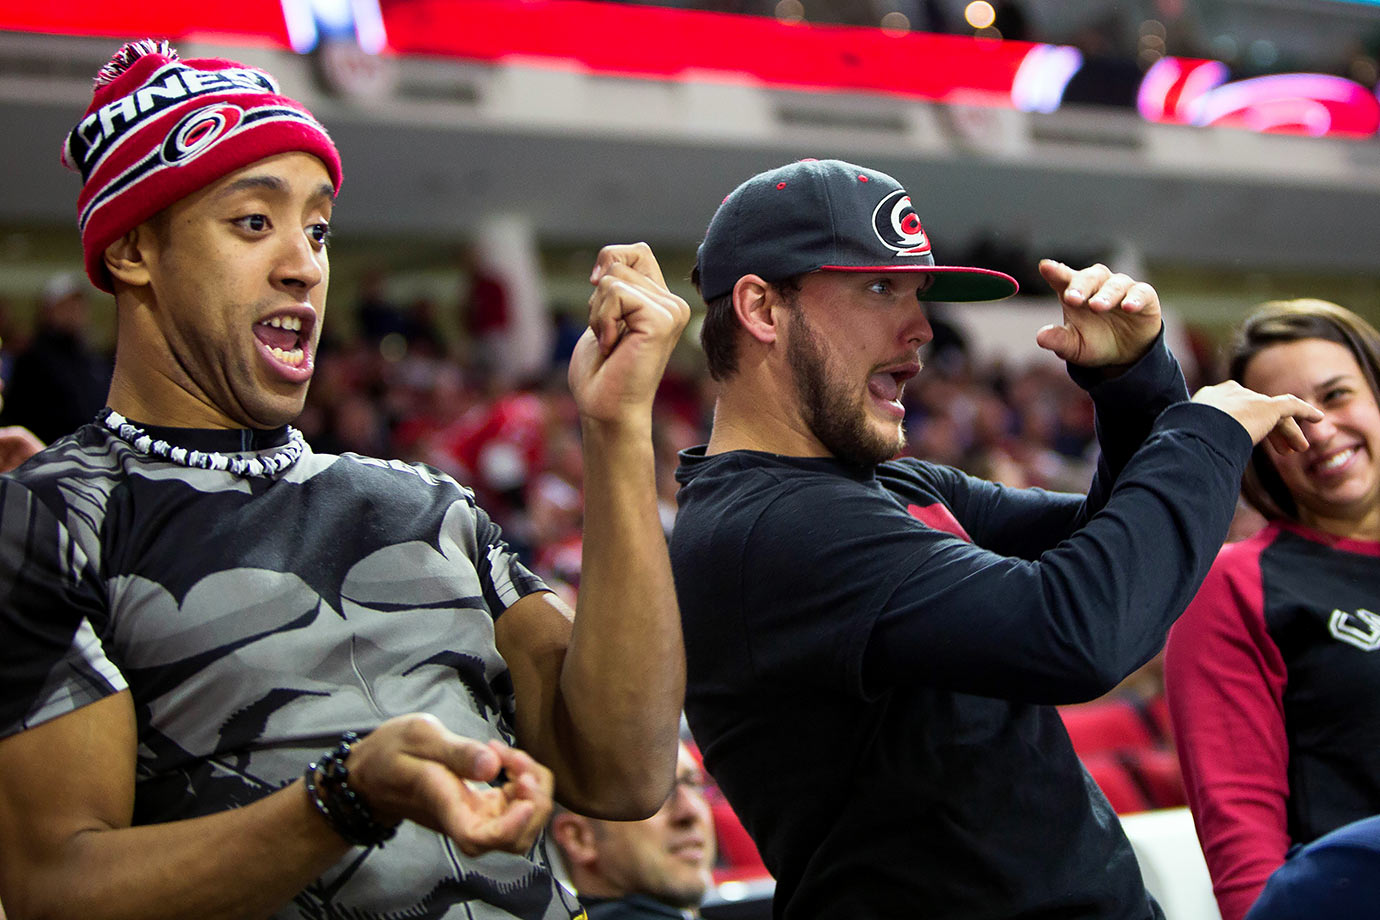 Carolina Hurricanes fans dance like nobody's watching, which must be easy at PNC Arena in Raleigh — lowest in NHL attendance.